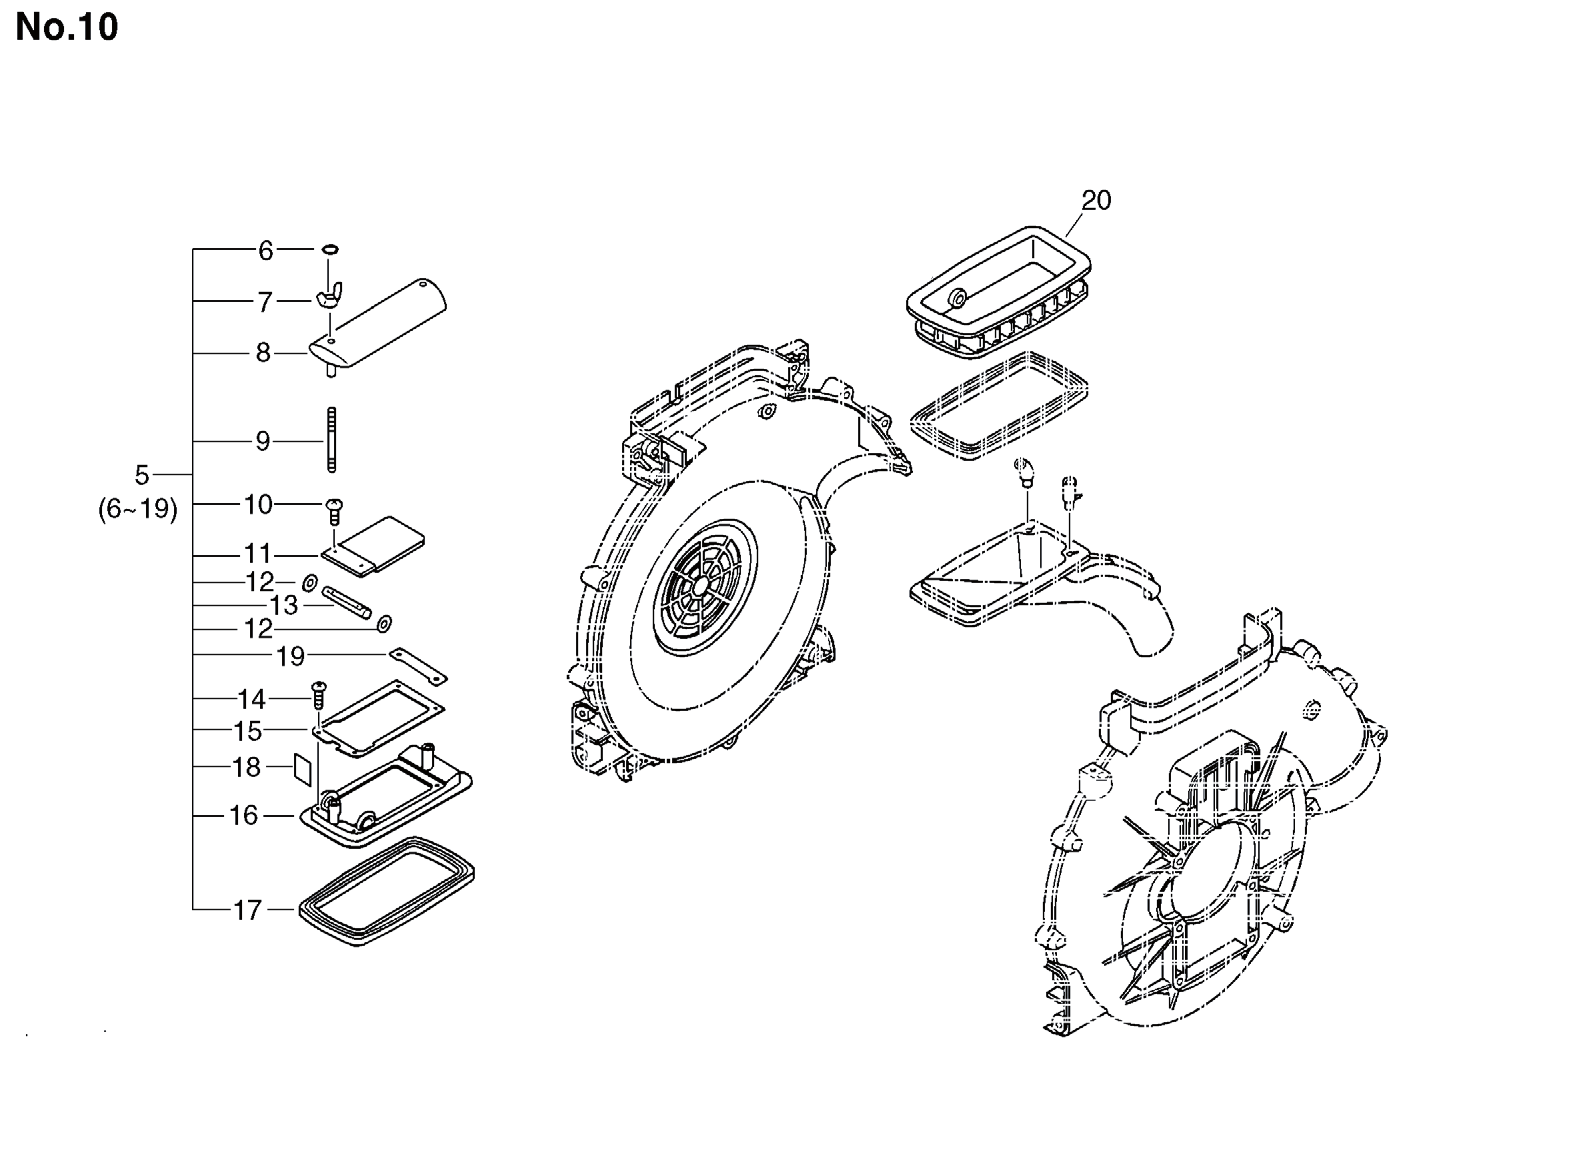 Group:Duster/Mist Blowers Model:DM-4610(SrNr 004334 and before) Section:Dust Attachment(DMAD-4610)-1 Group:Duster/Mist Blowers Model:DM-4610(SrNr 004334 and before) Section:Dust